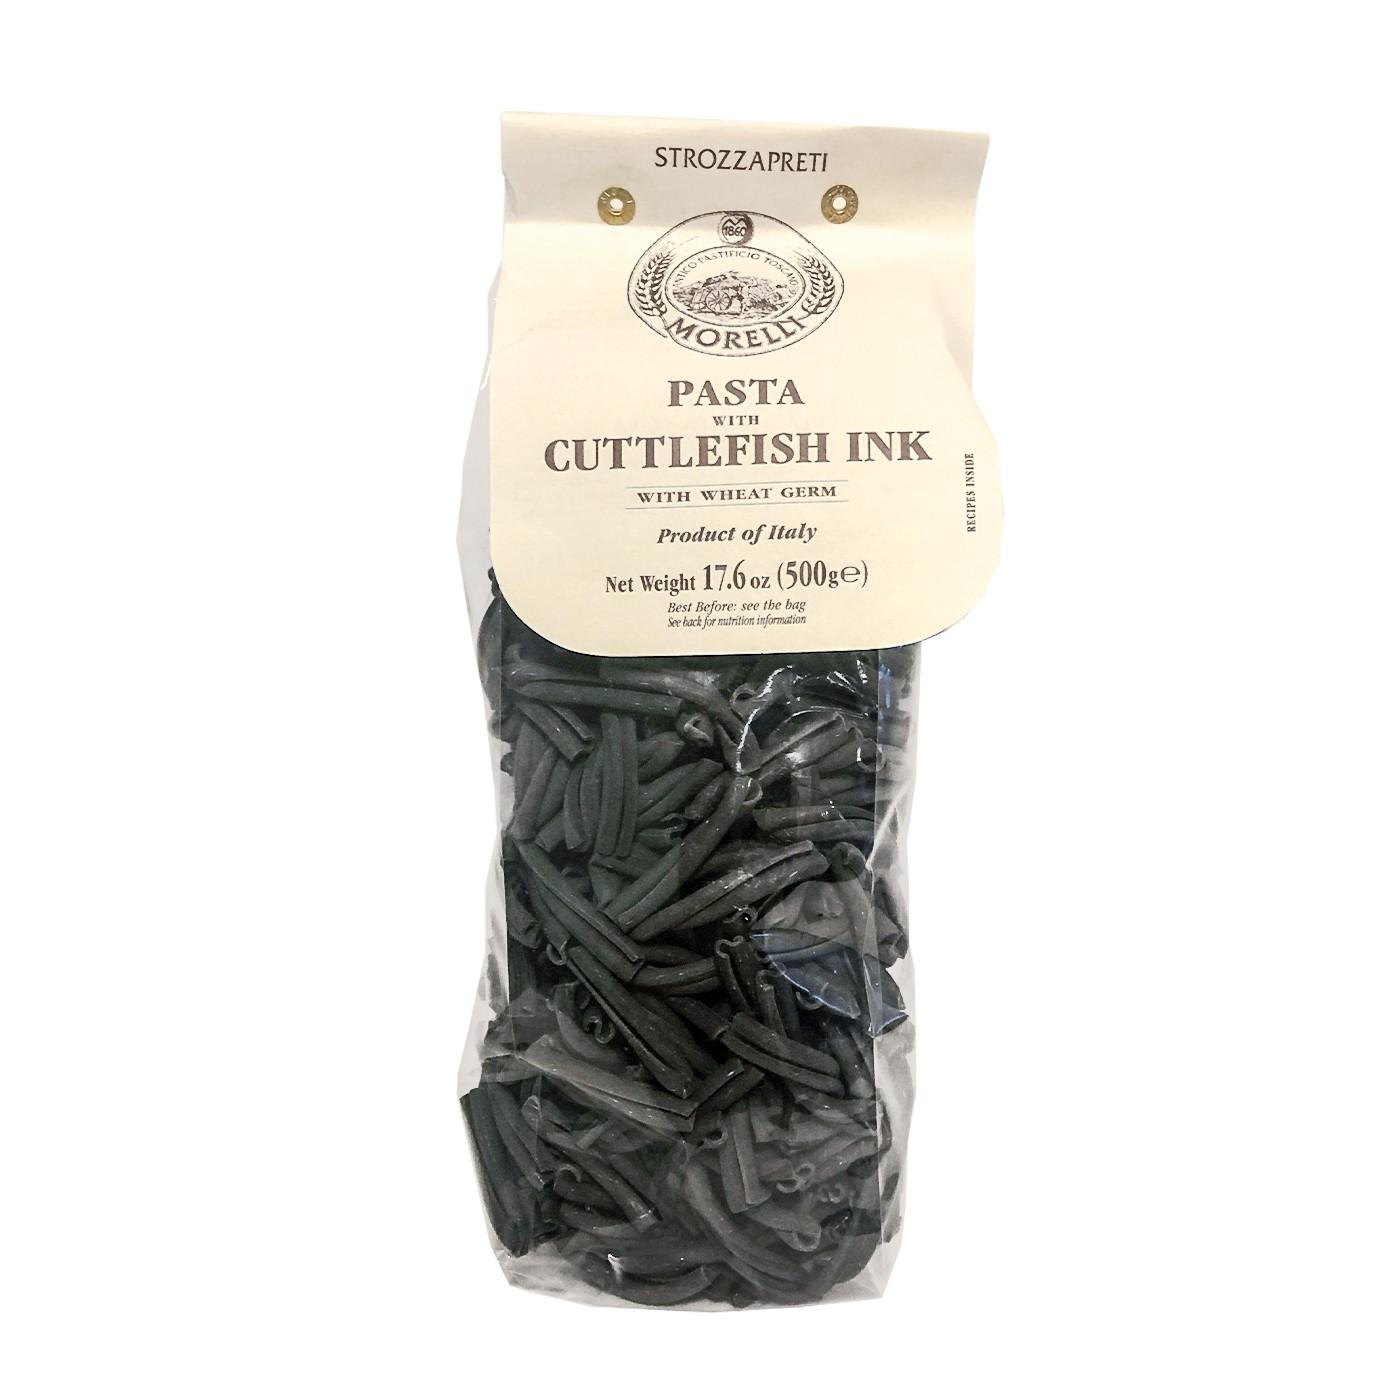 Strozzapreti Pasta with Cuttlefish Ink 17.6oz